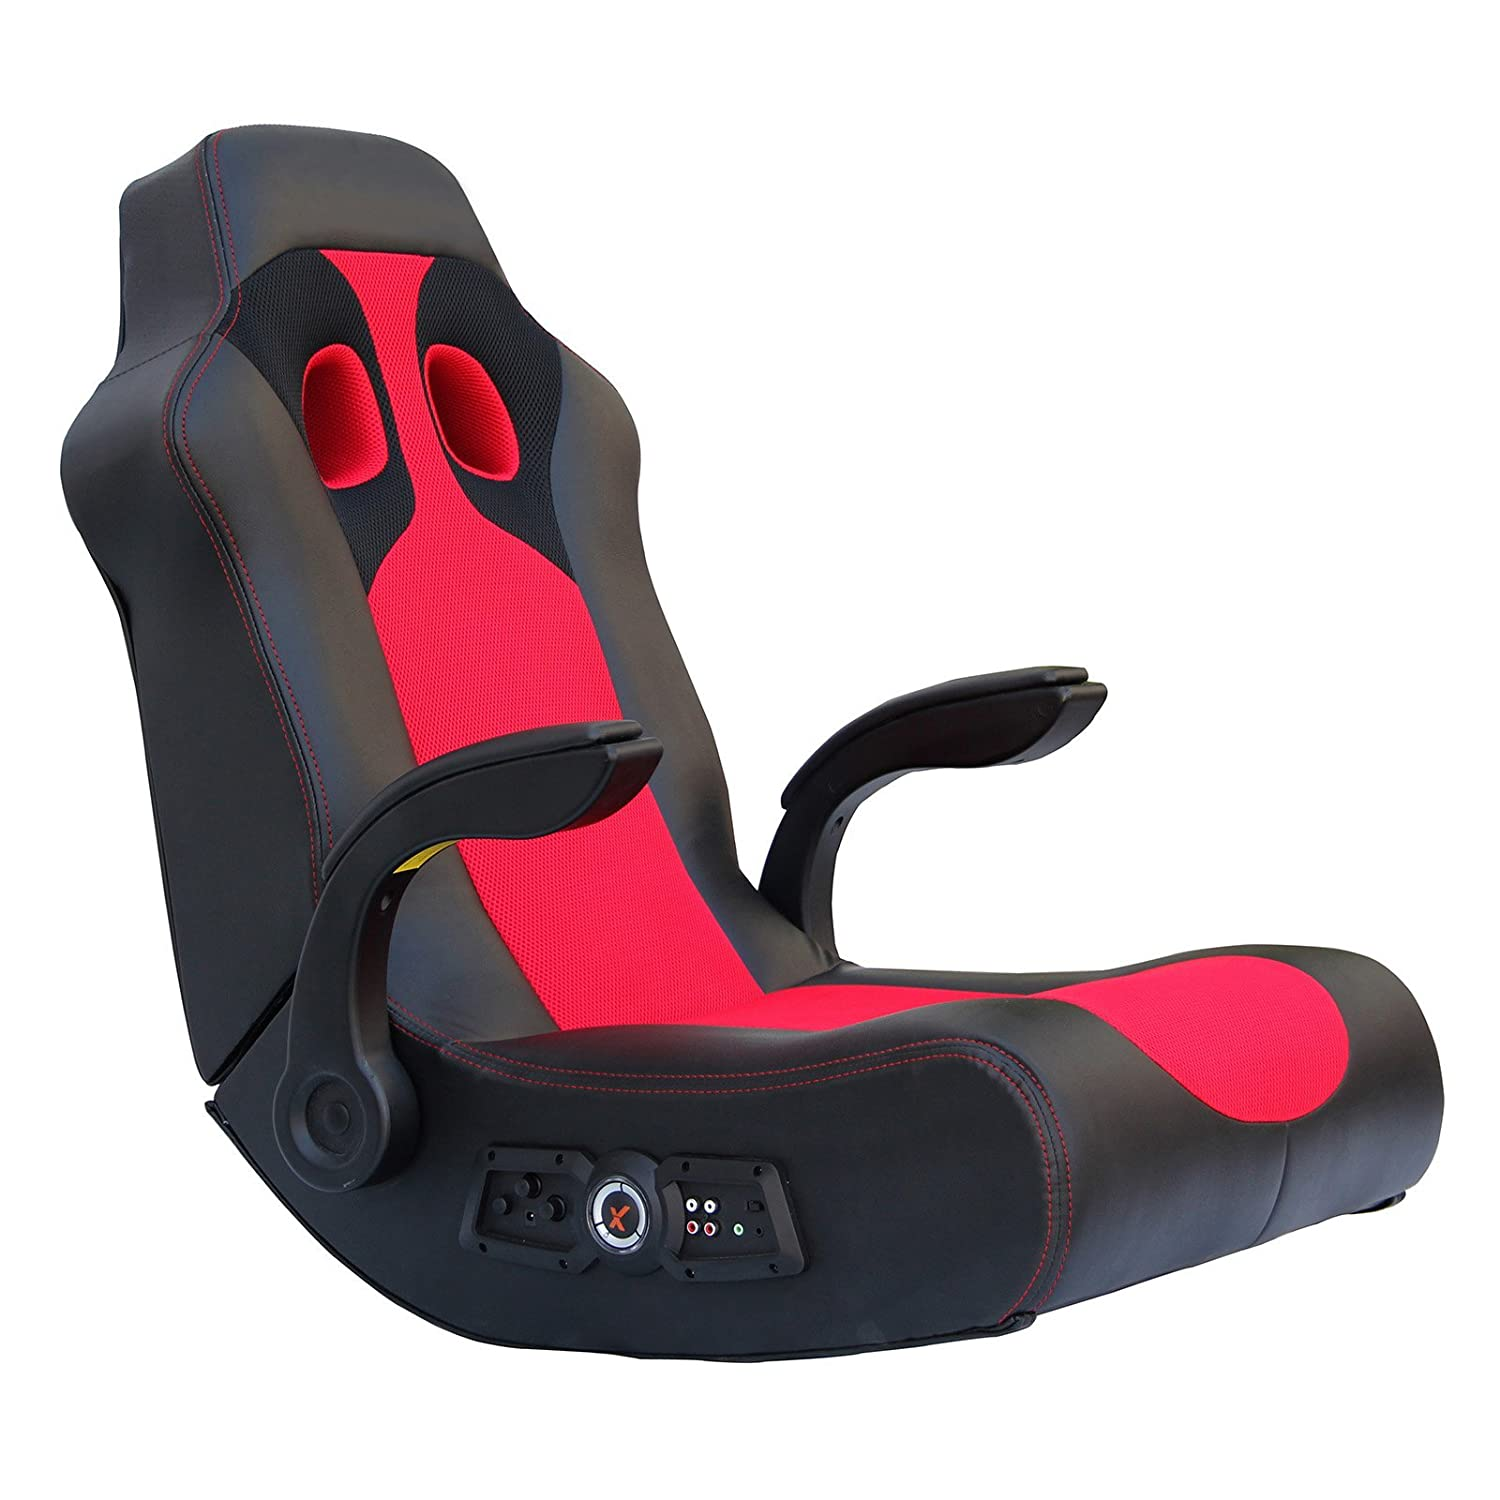 Amazon Ace Bayou X Rocker Vibe Video Game Chair with 21